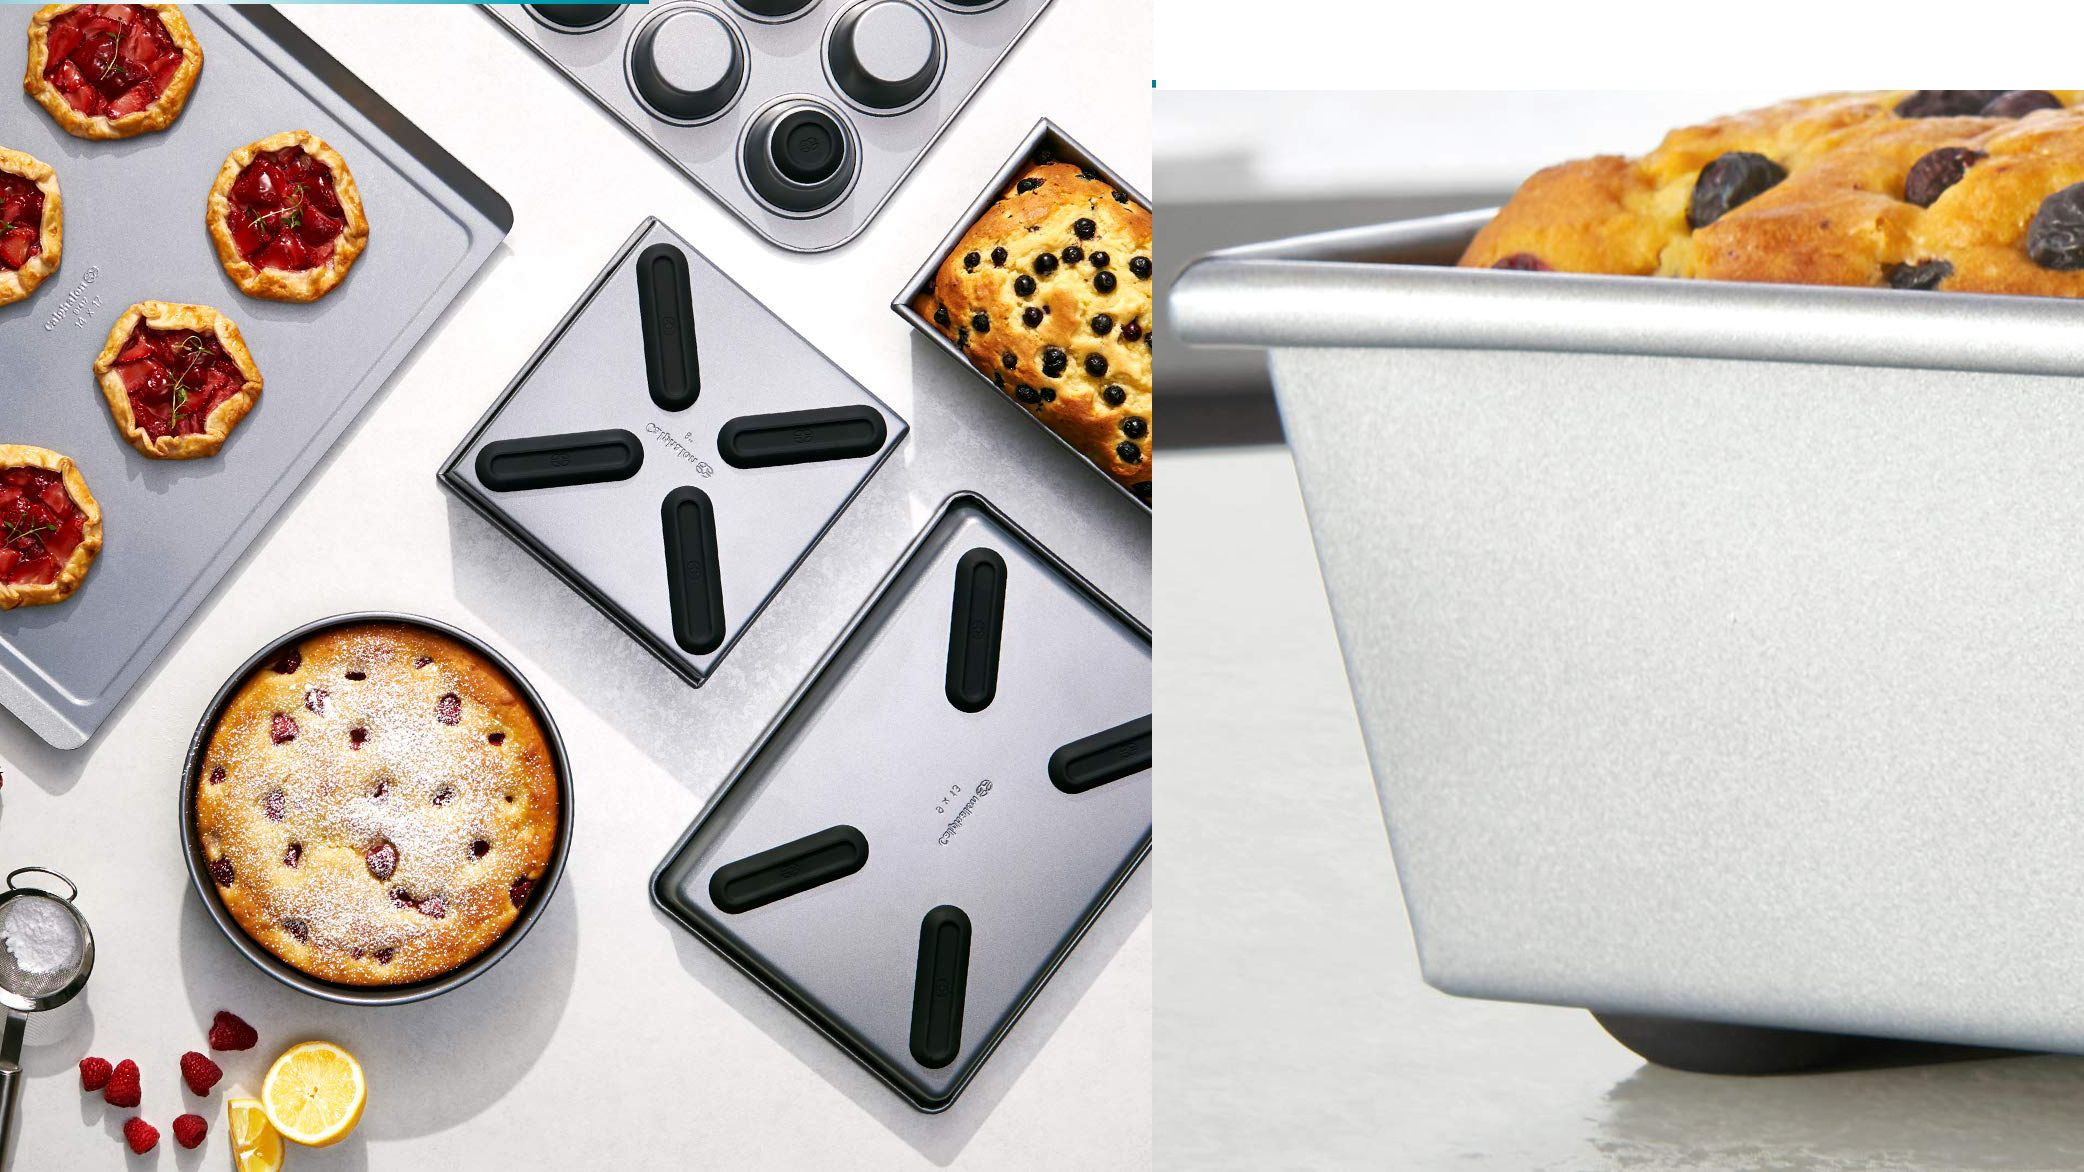 8 Best Baking Pans and Bakeware Sets of 2020, According to Kitchen Experts